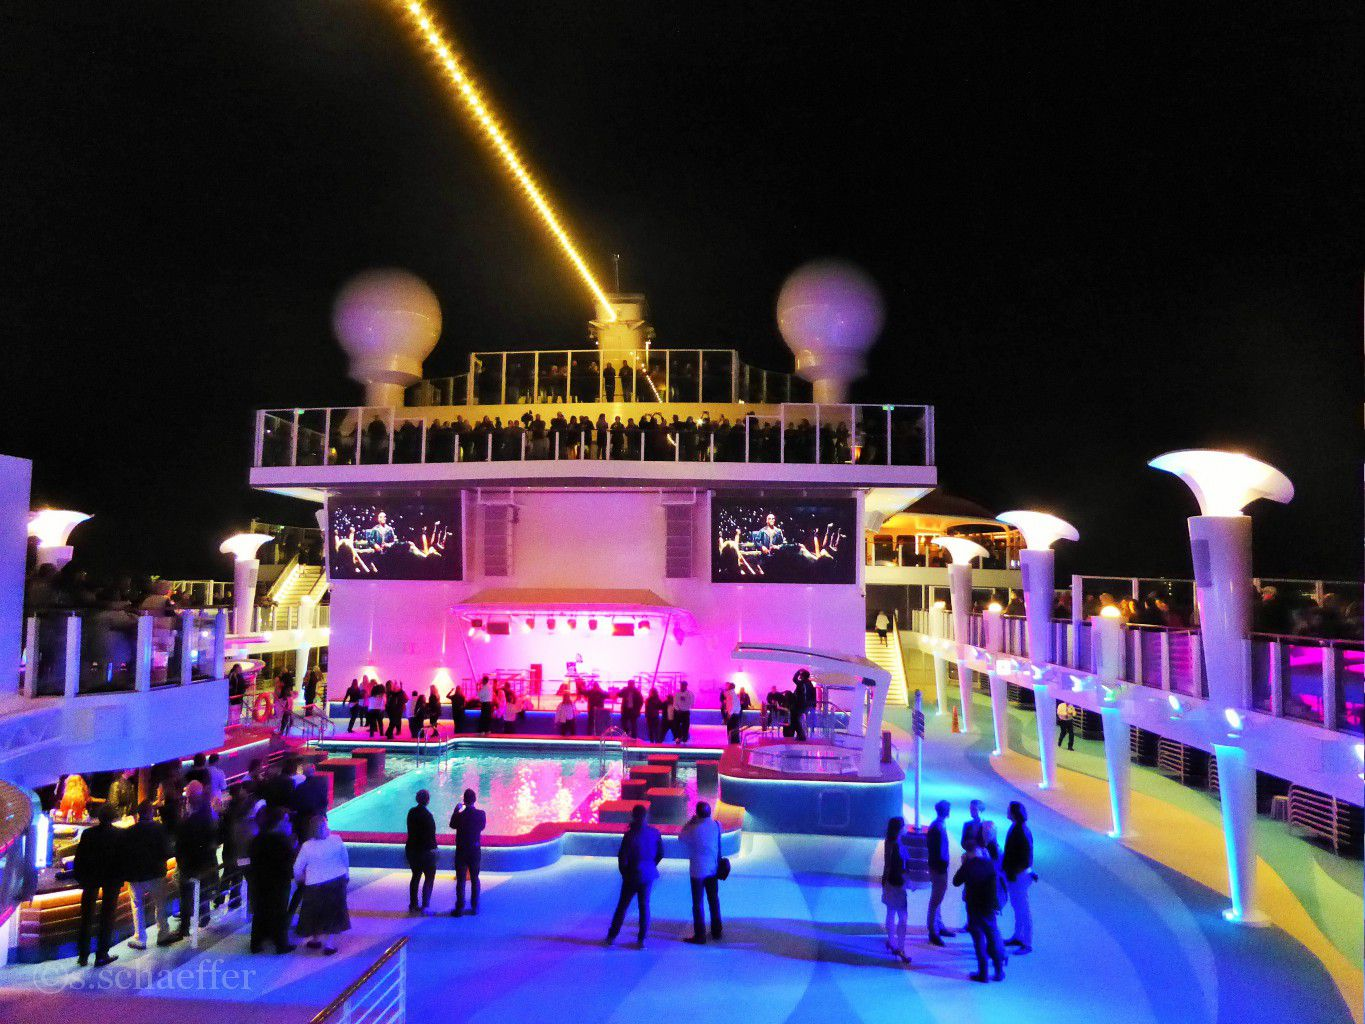 Norwegian Escape Pooldeck